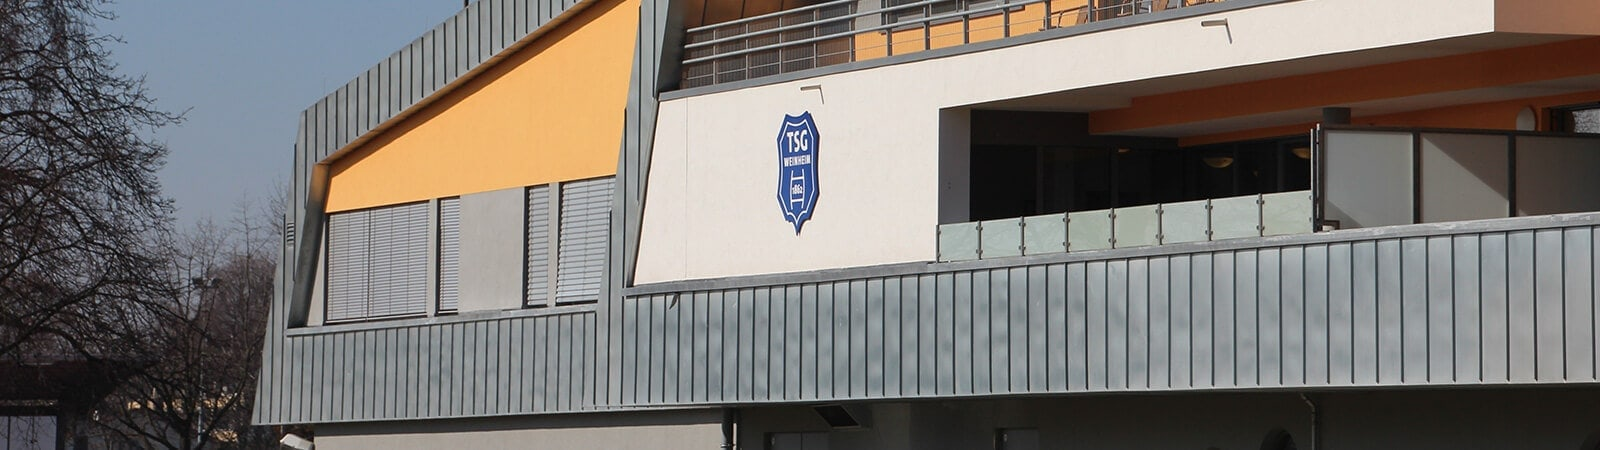 TSG Weinheim - Download